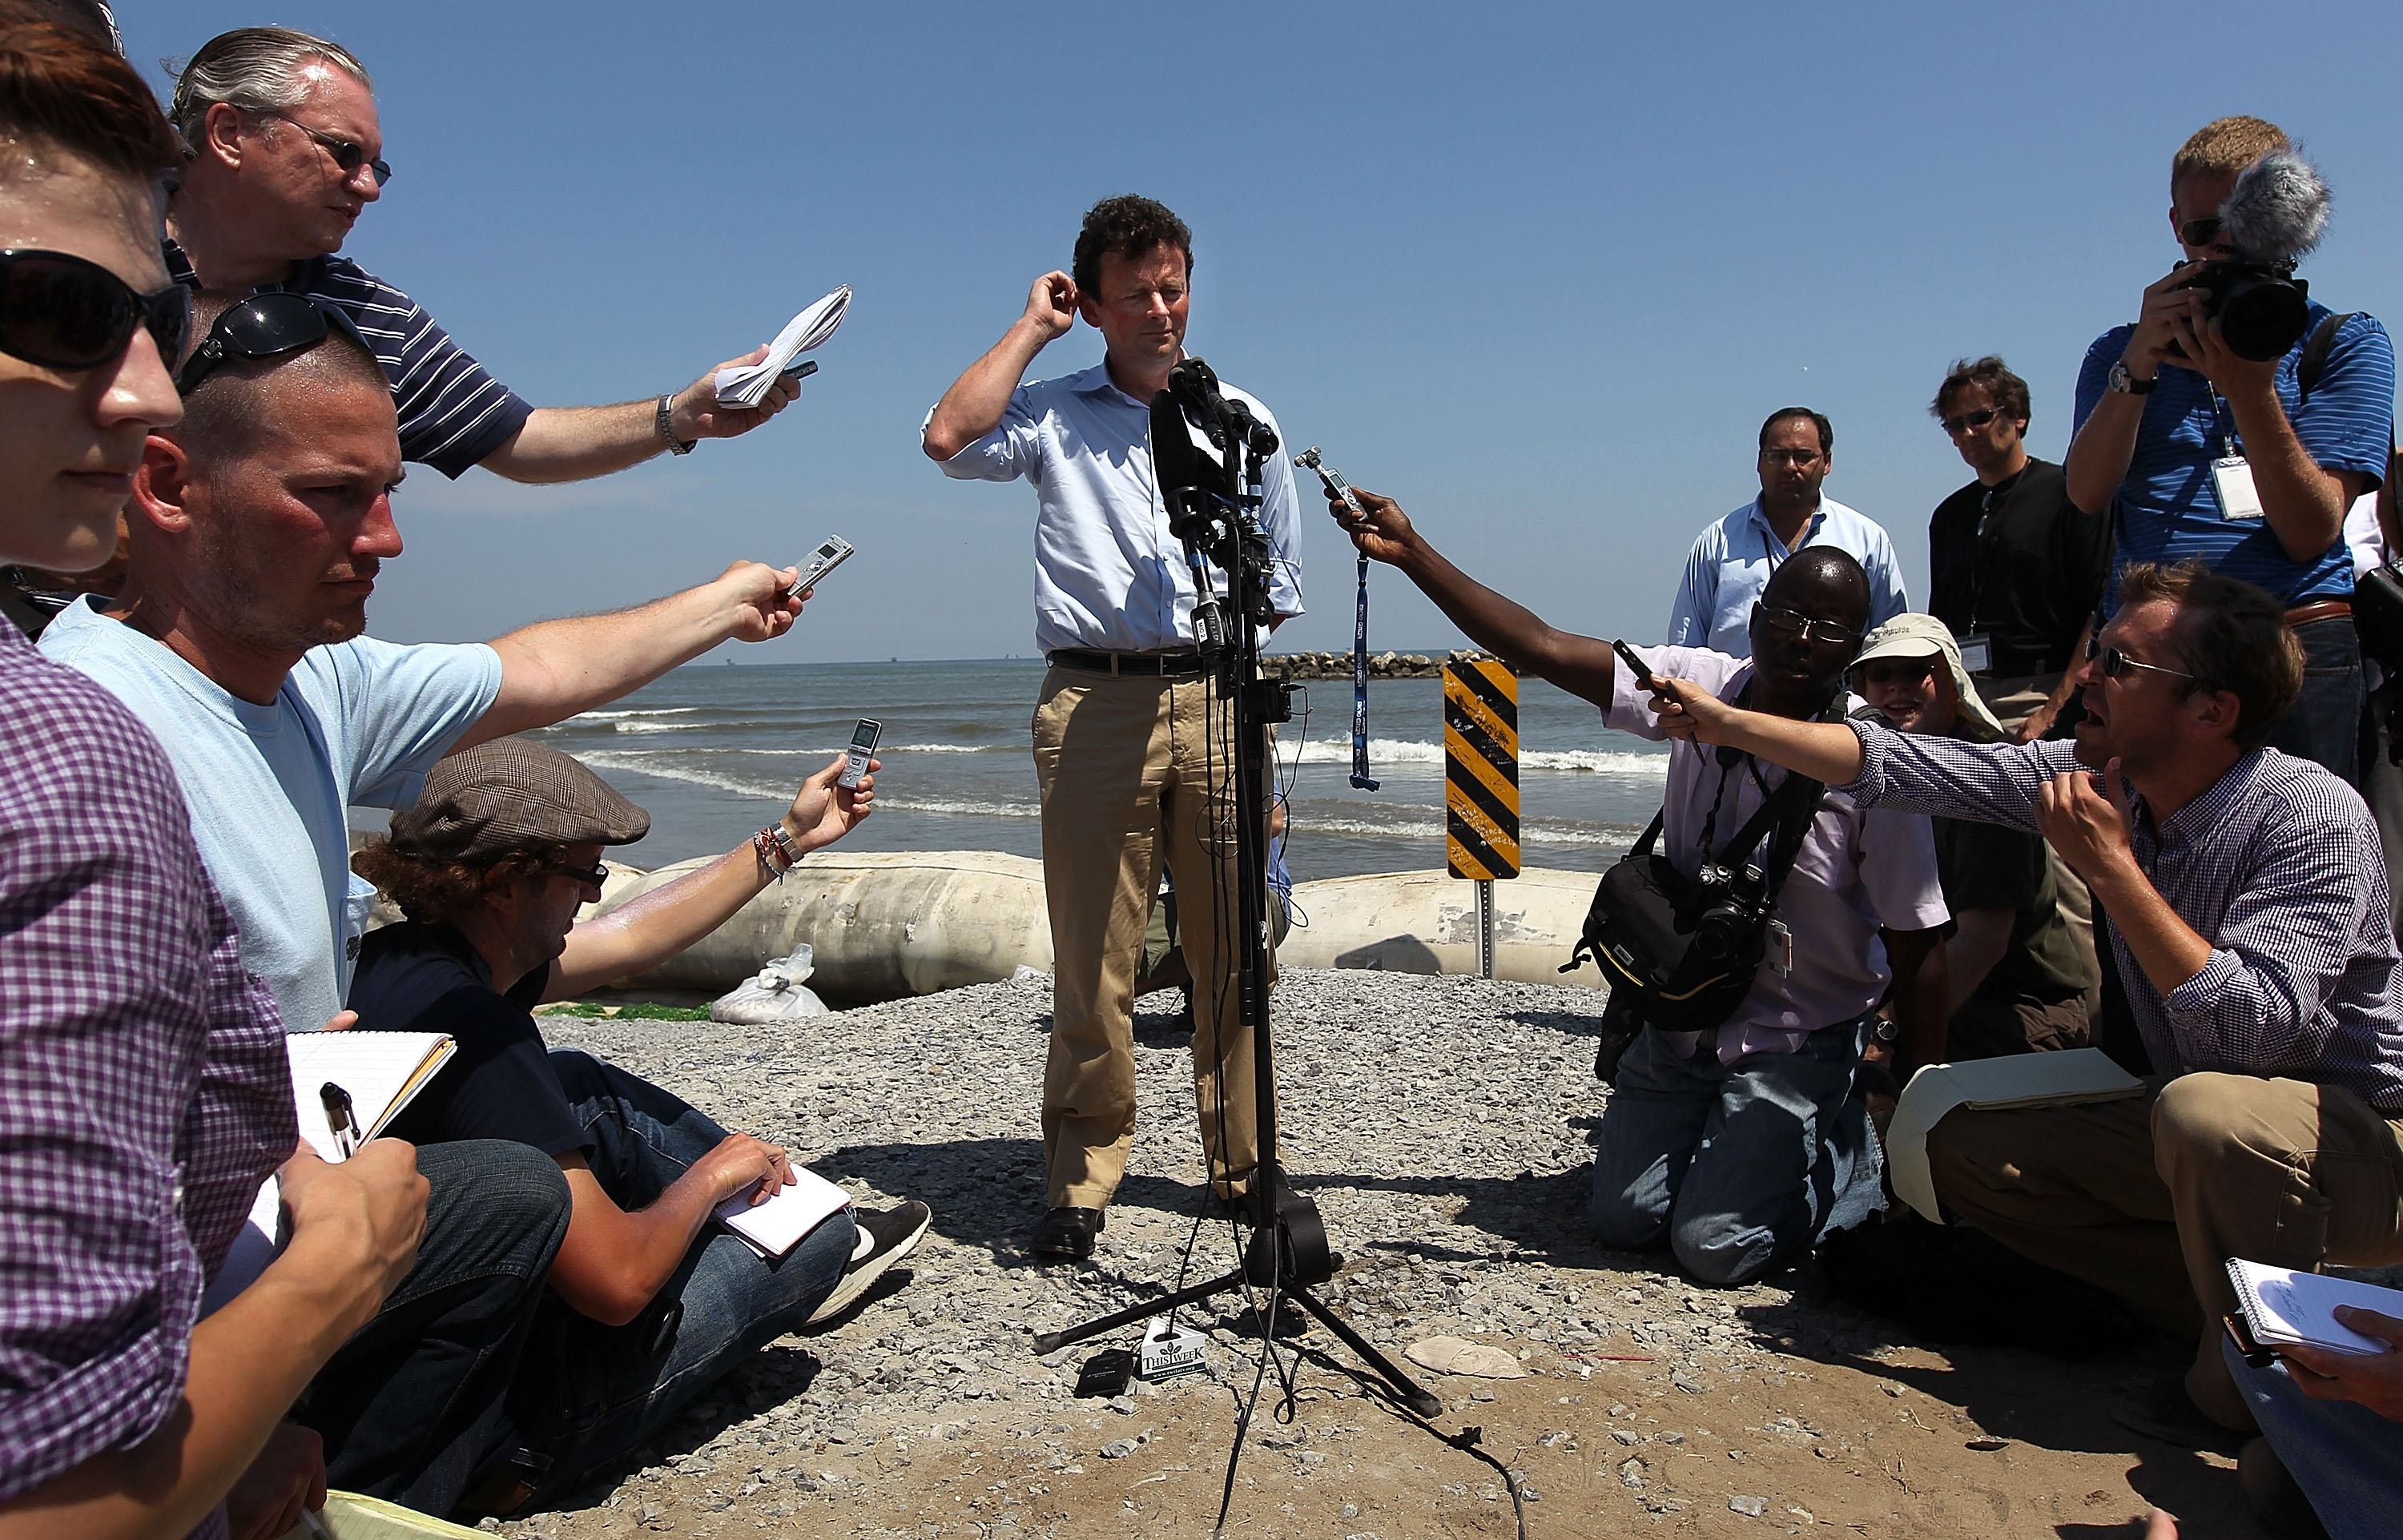 Former BP CEO Tony Hayward answers questions from the media on an oil-stained beach.